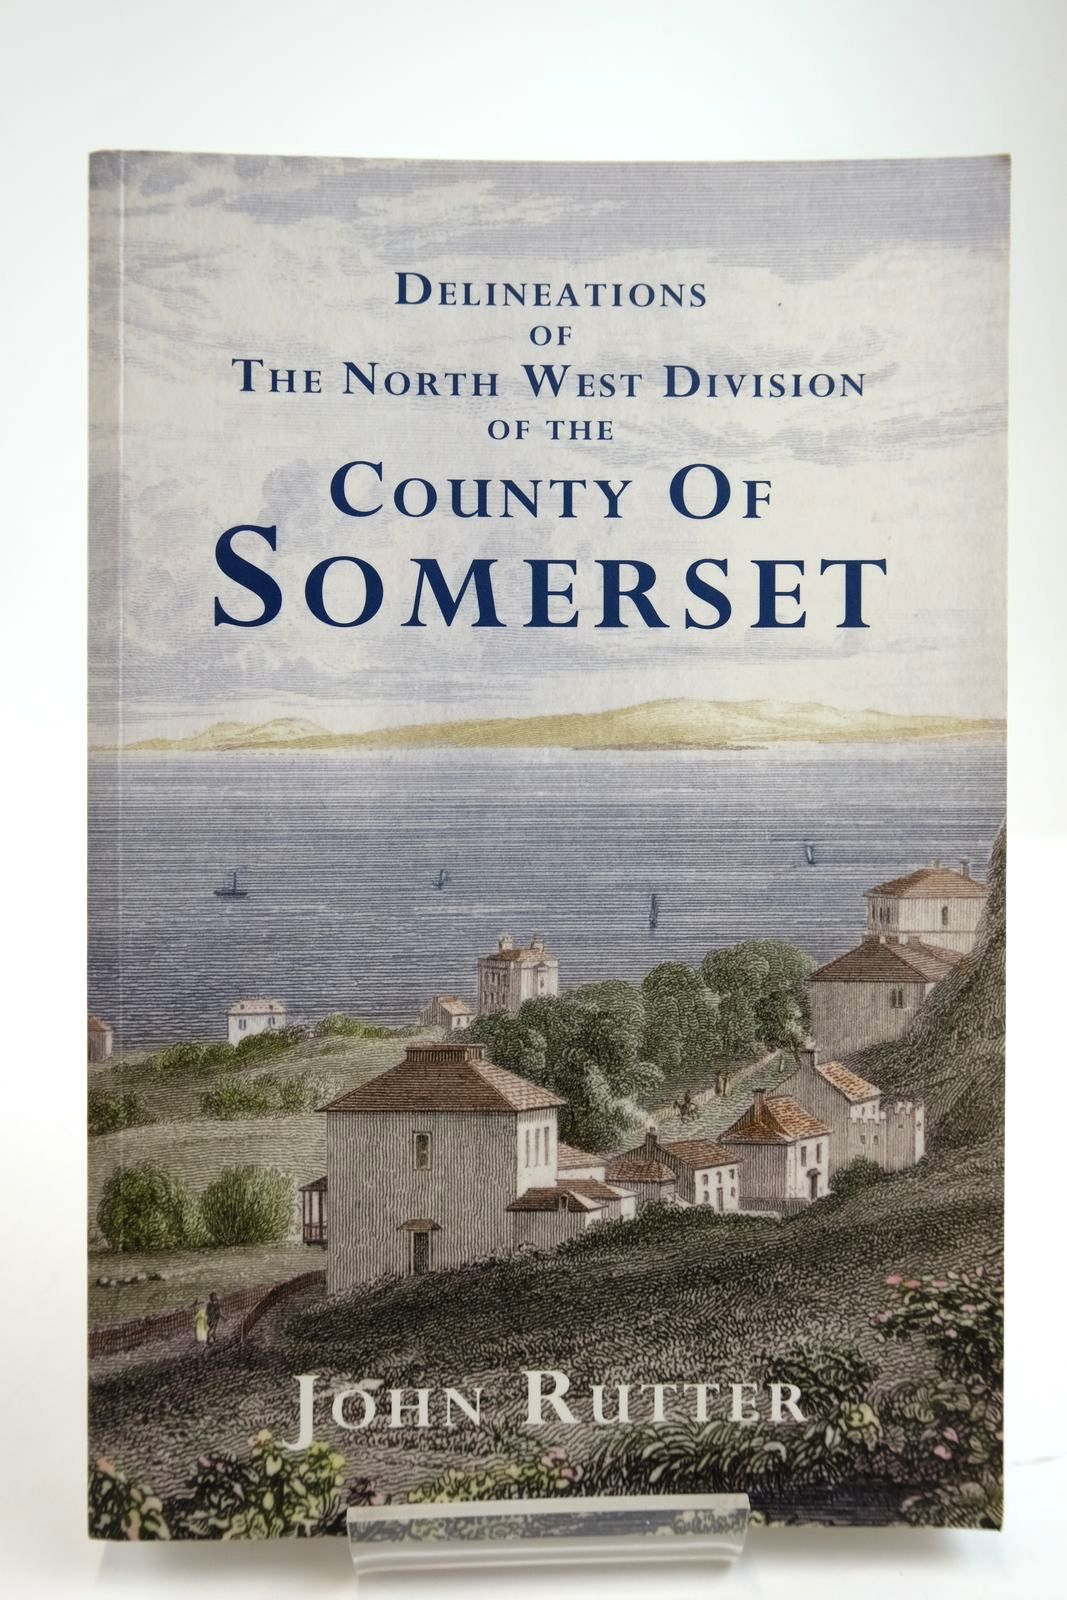 Photo of DELINEATIONS OF THE NORTH WEST DIVISION OF THE COUNTY OF SOMERSET written by Rutter, John published by Amberley (STOCK CODE: 2133680)  for sale by Stella & Rose's Books